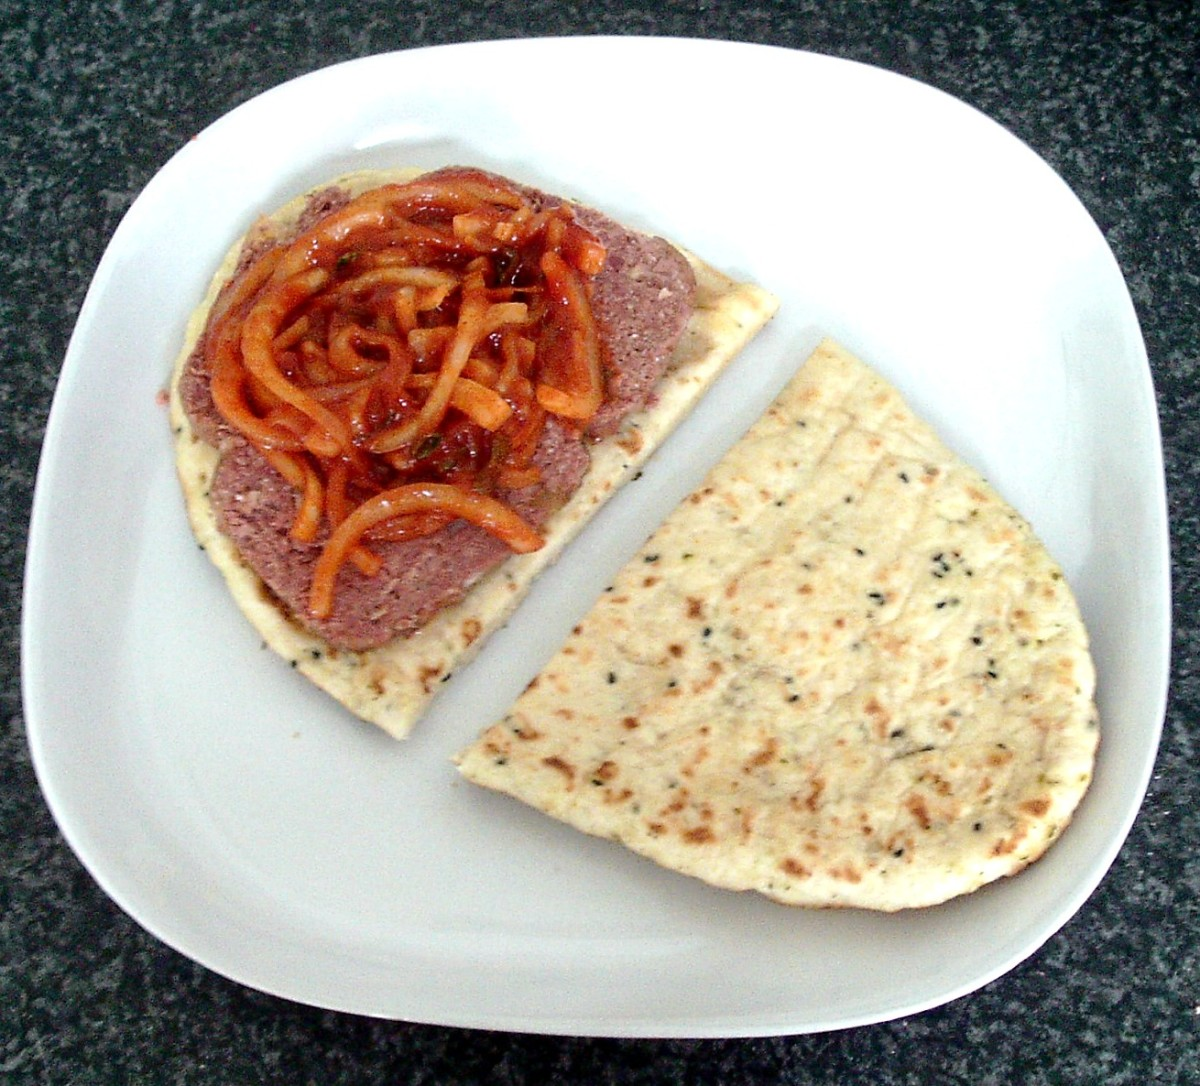 Spiced onions are spooned on to corned beef slices on naan half